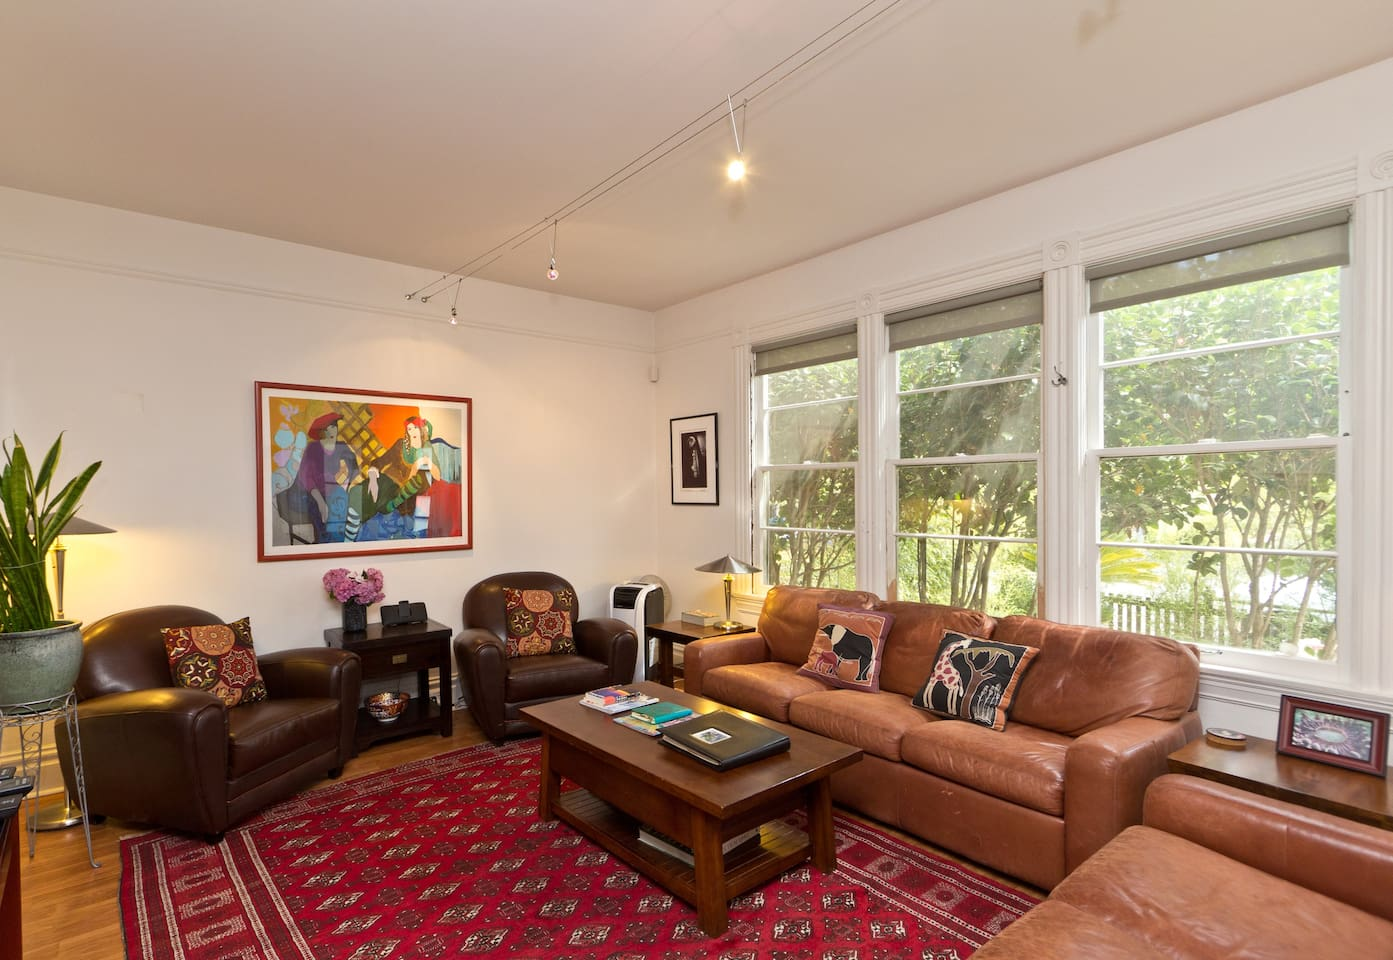 The living room is well lit, spacious and comfortably furnished.